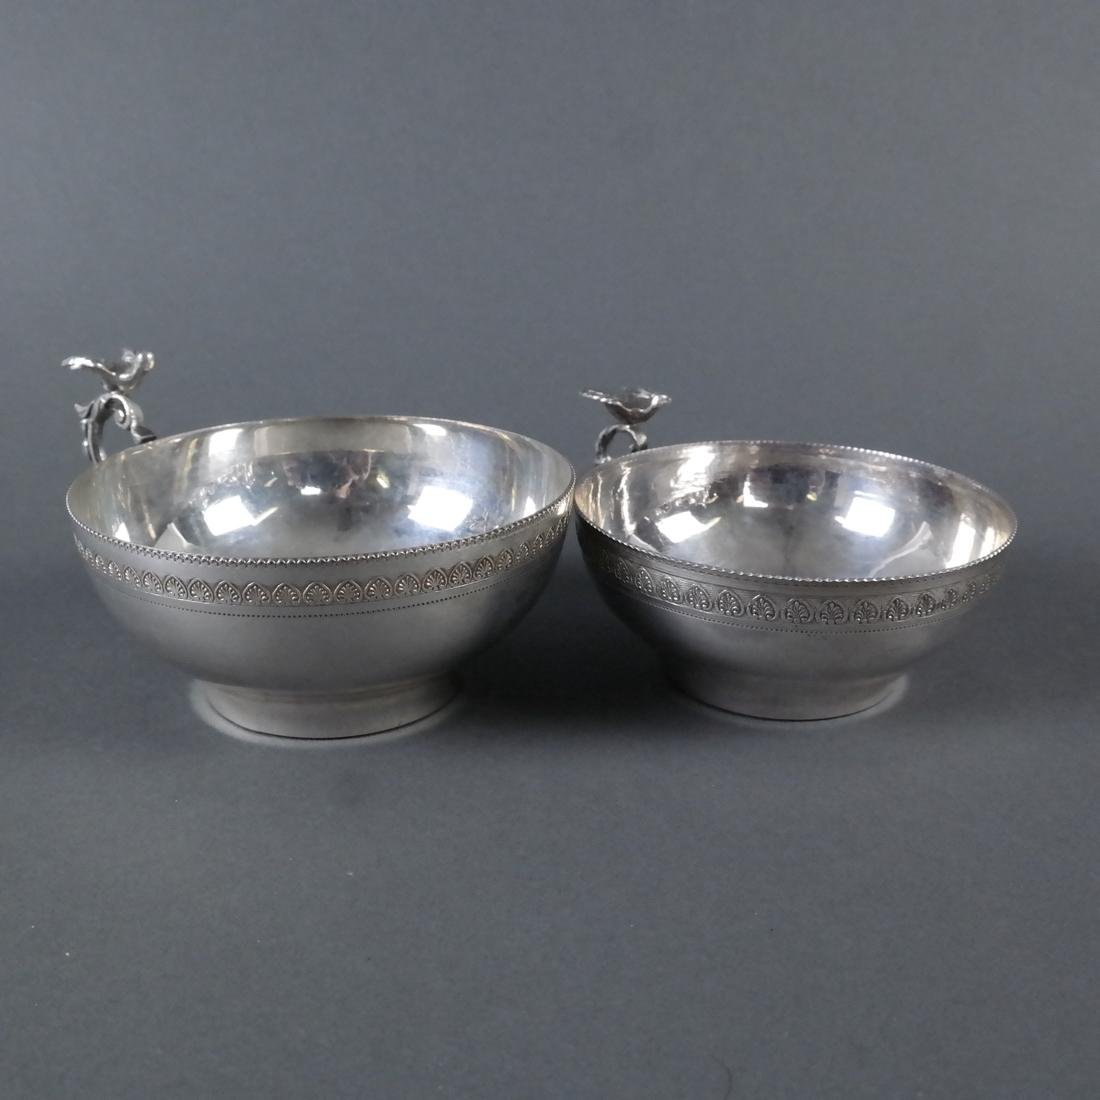 Two .900 Standard Silver Cups